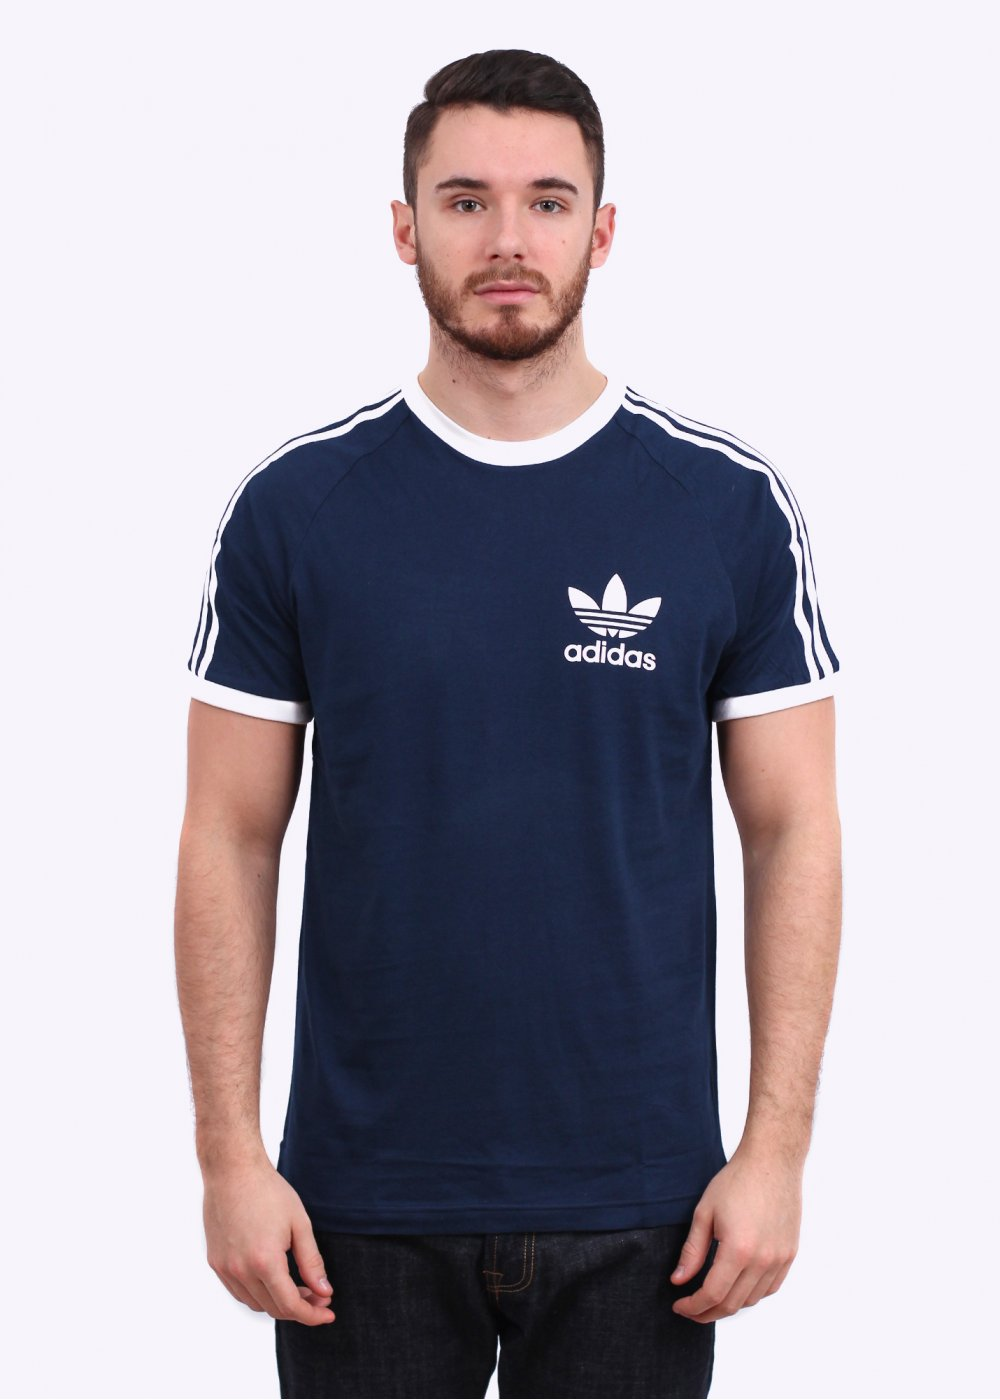 c9abb27ac8 adidas Originals Sports Ess Tee - Navy